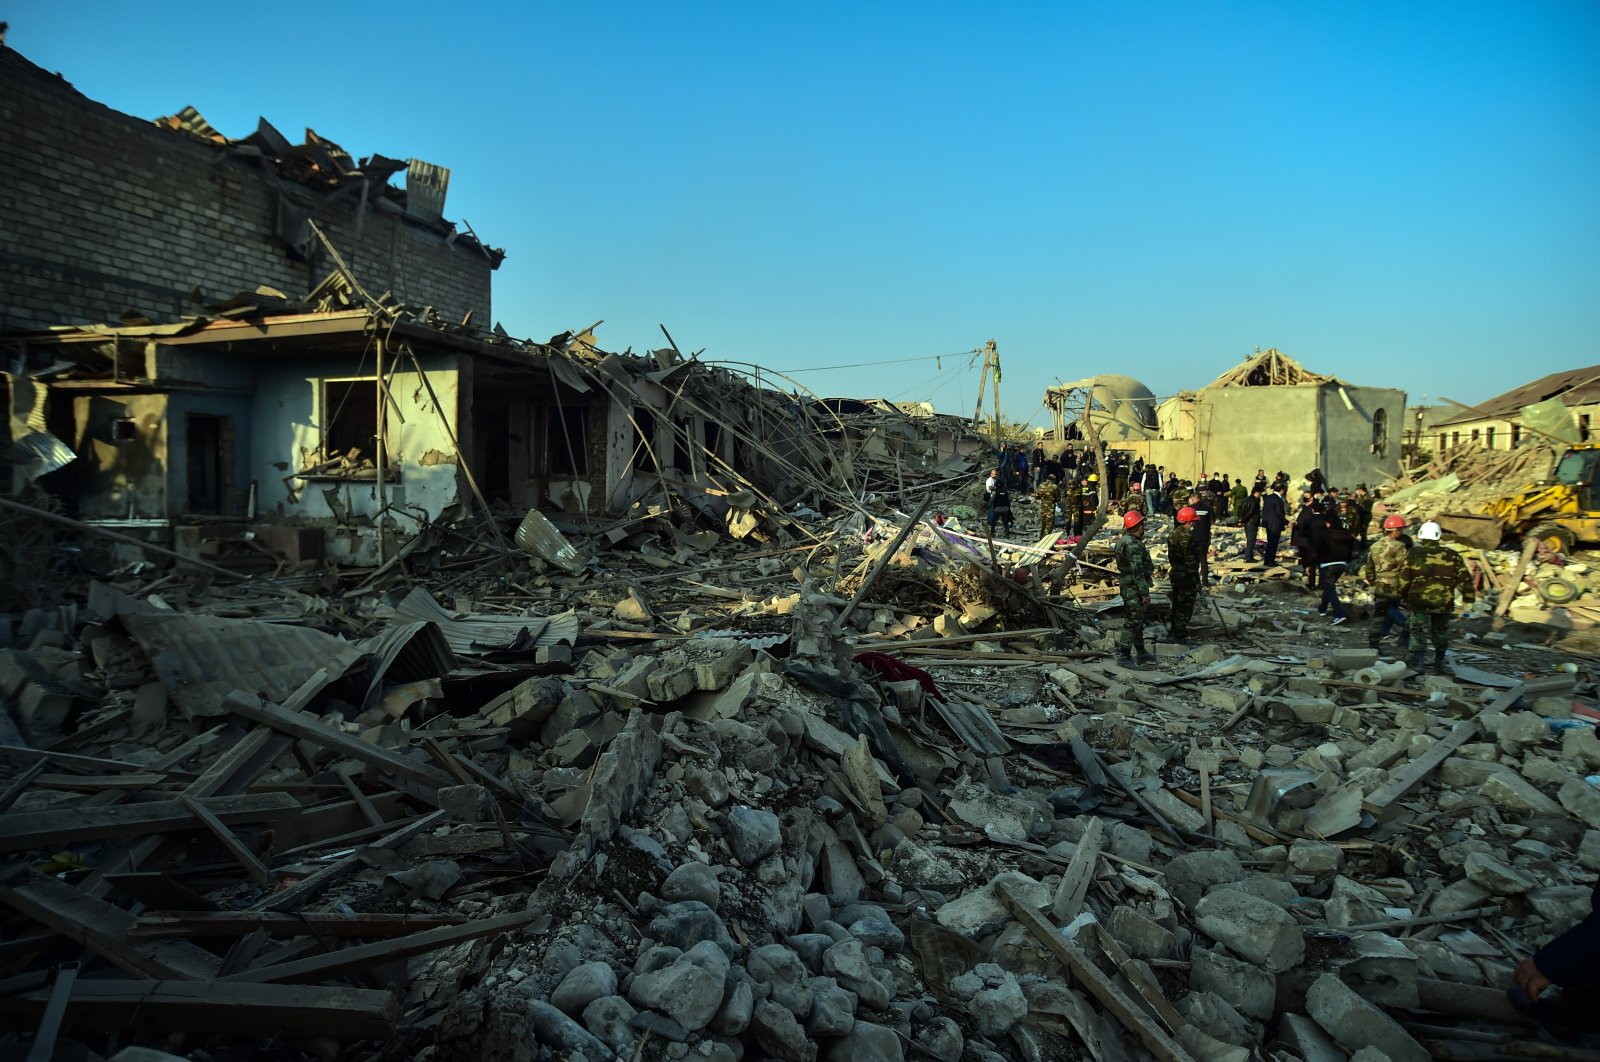 Rescue workers inspect the area destroyed by Armenian shelling against civilians in the Azerbaijani city of Ganja, Oct. 17, 2020. (İHA Photo)